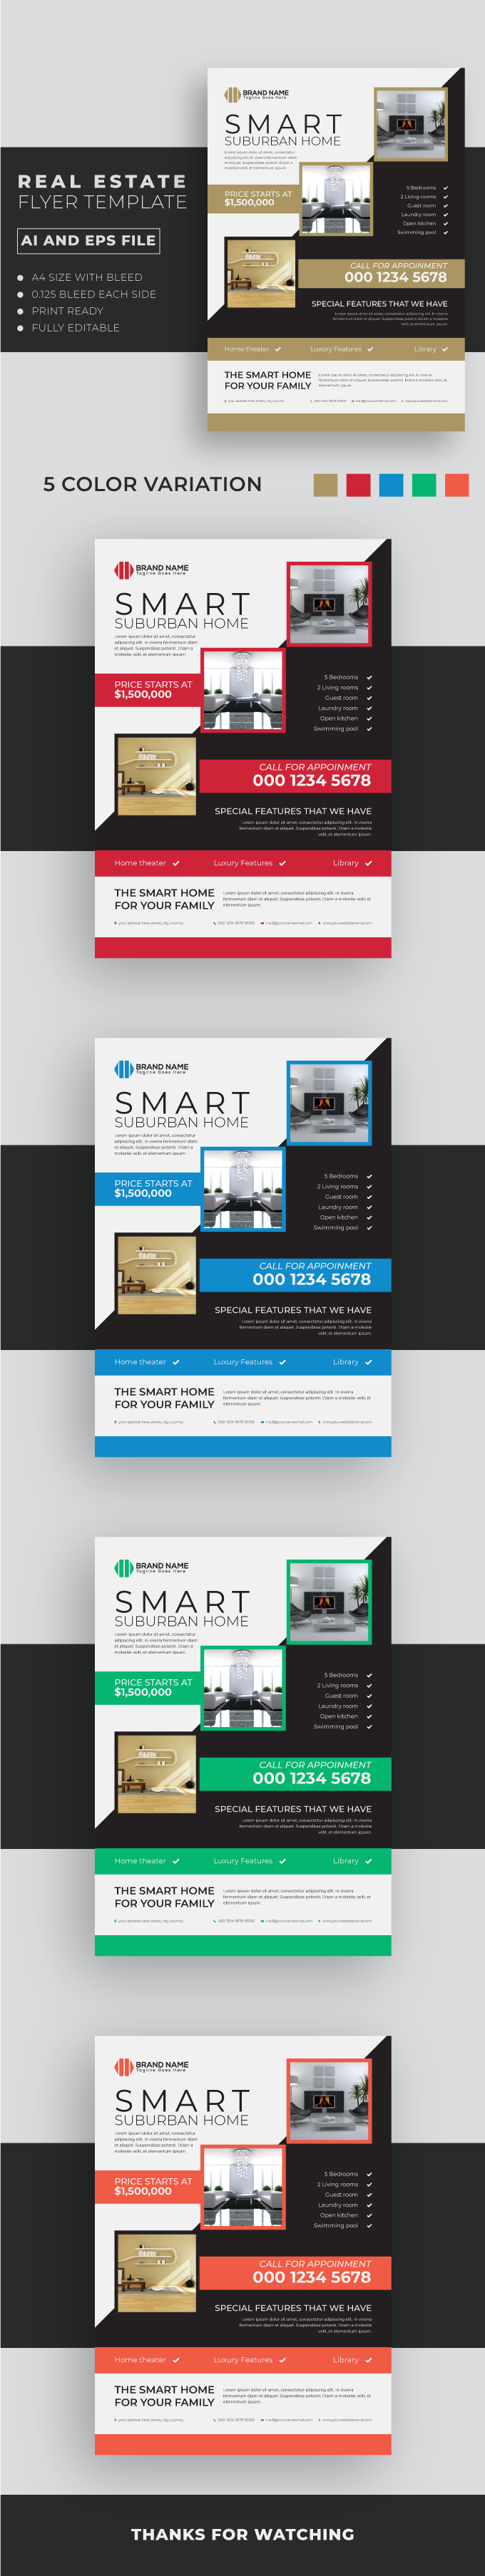 Real Estate Flyer Template 2